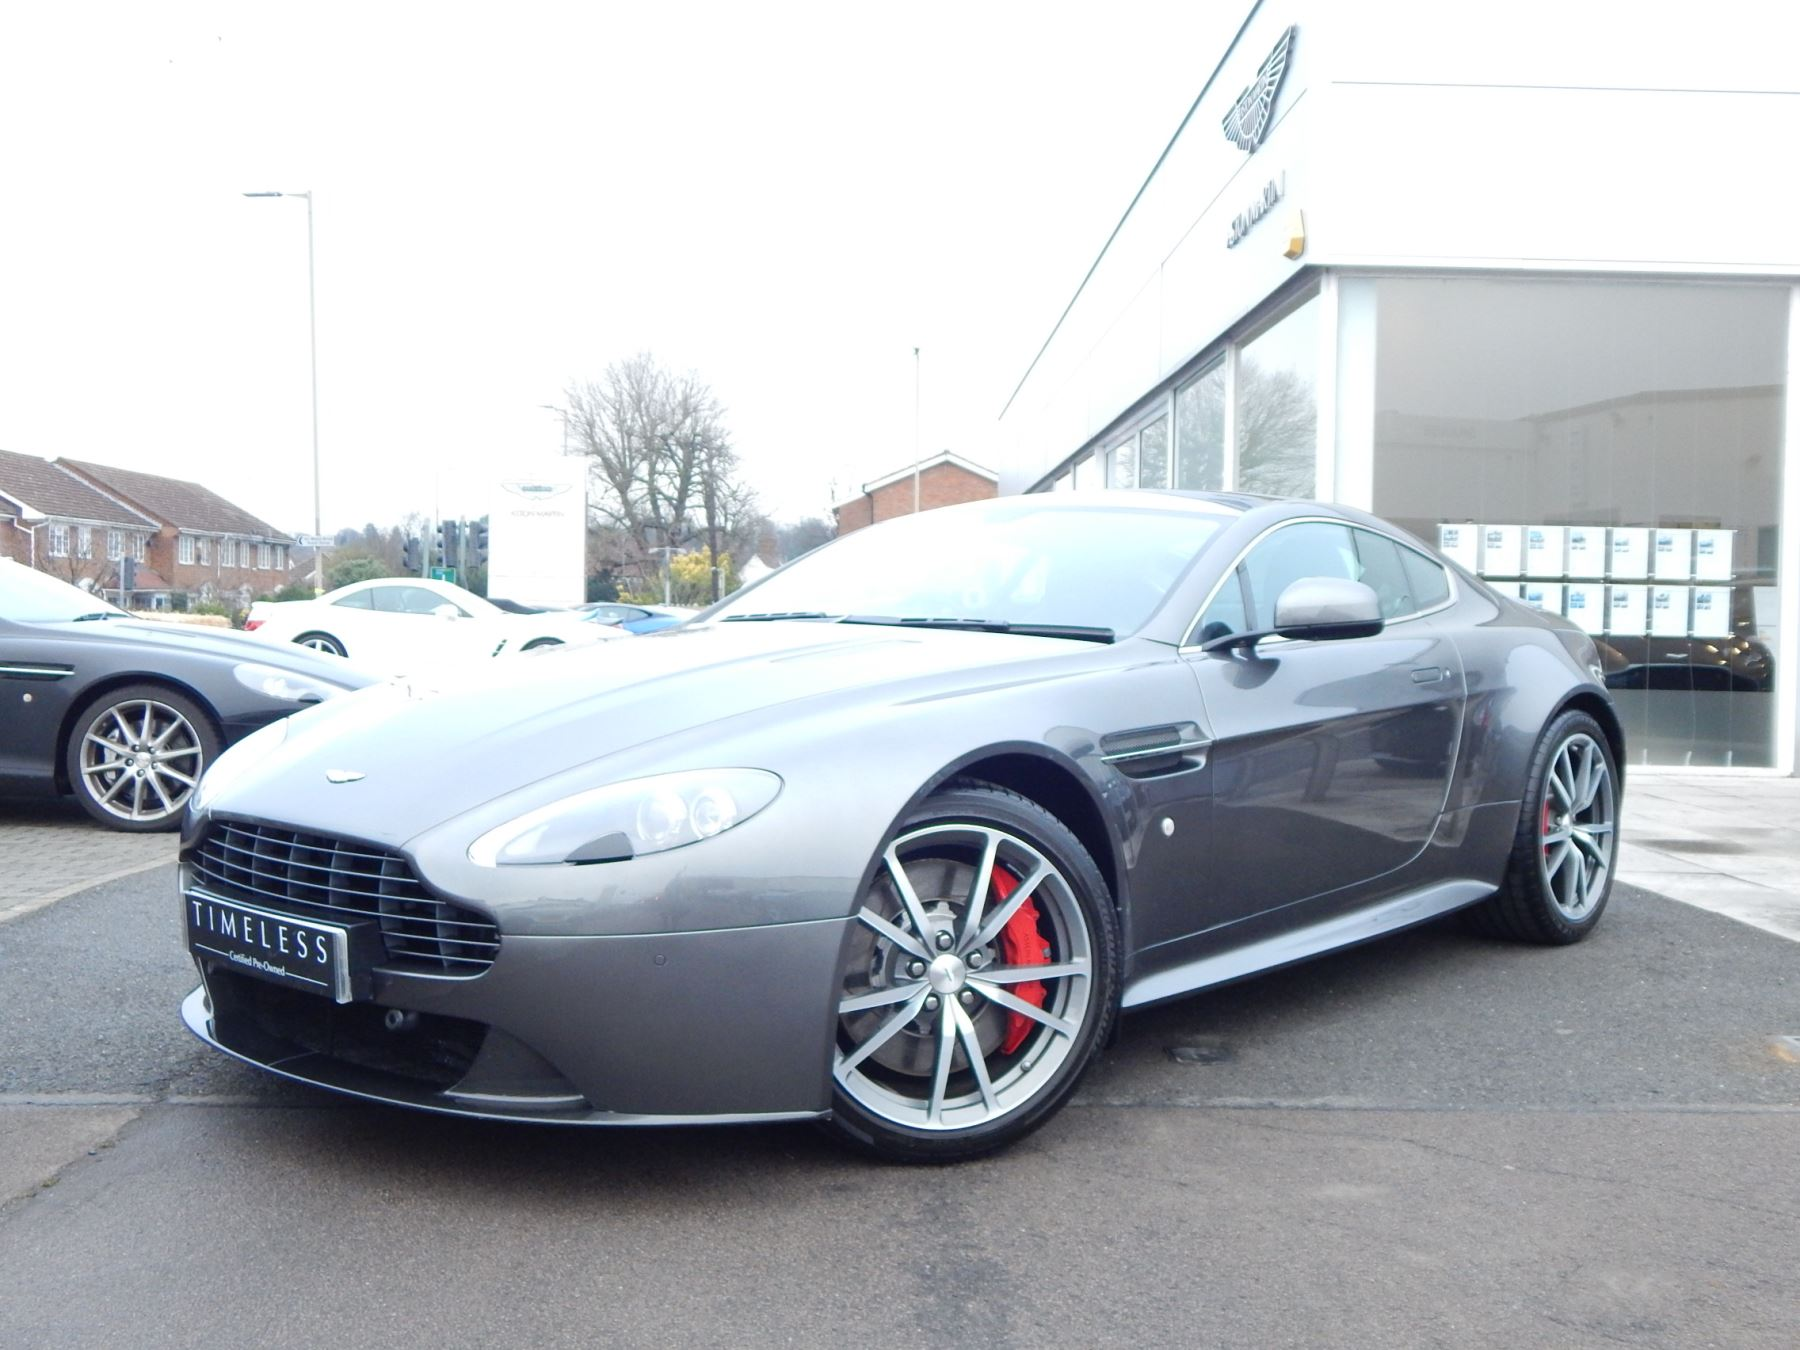 Aston Martin V8 Vantage S Coupe S 2dr 4.7 3 door Coupe (2017)